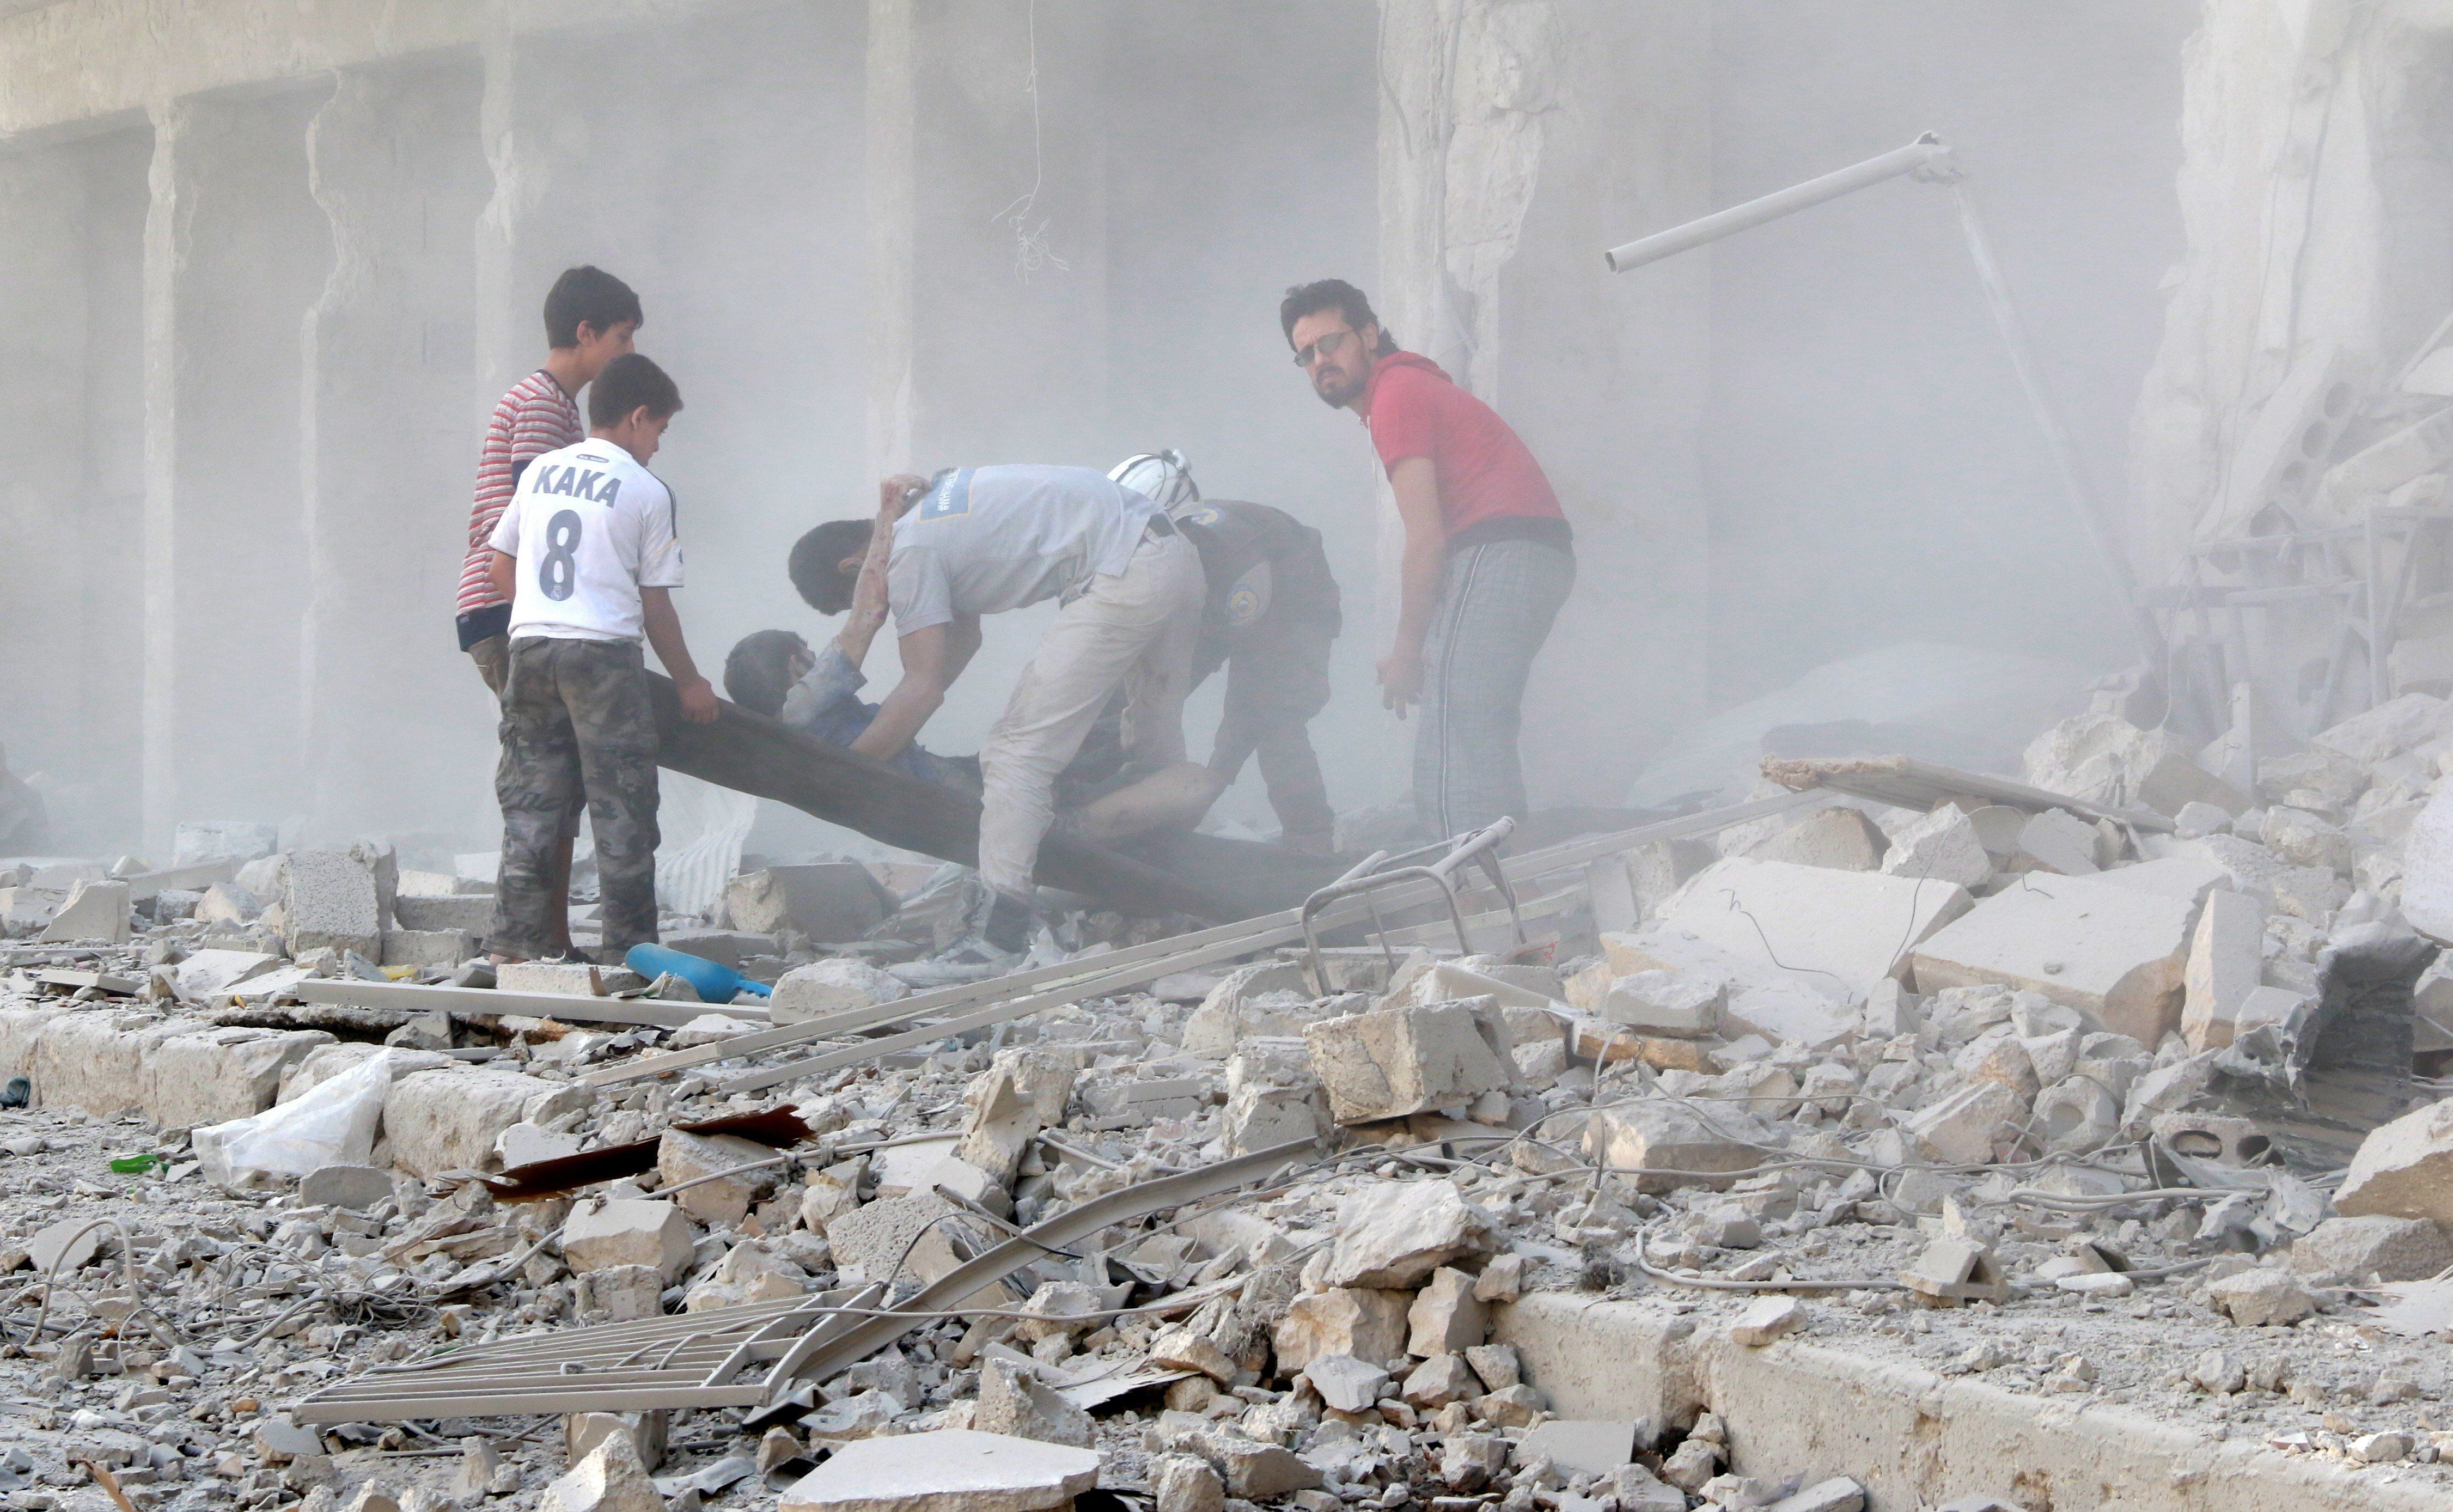 With no truce, the Syrian airstrikes continue to destroy Aleppo and its